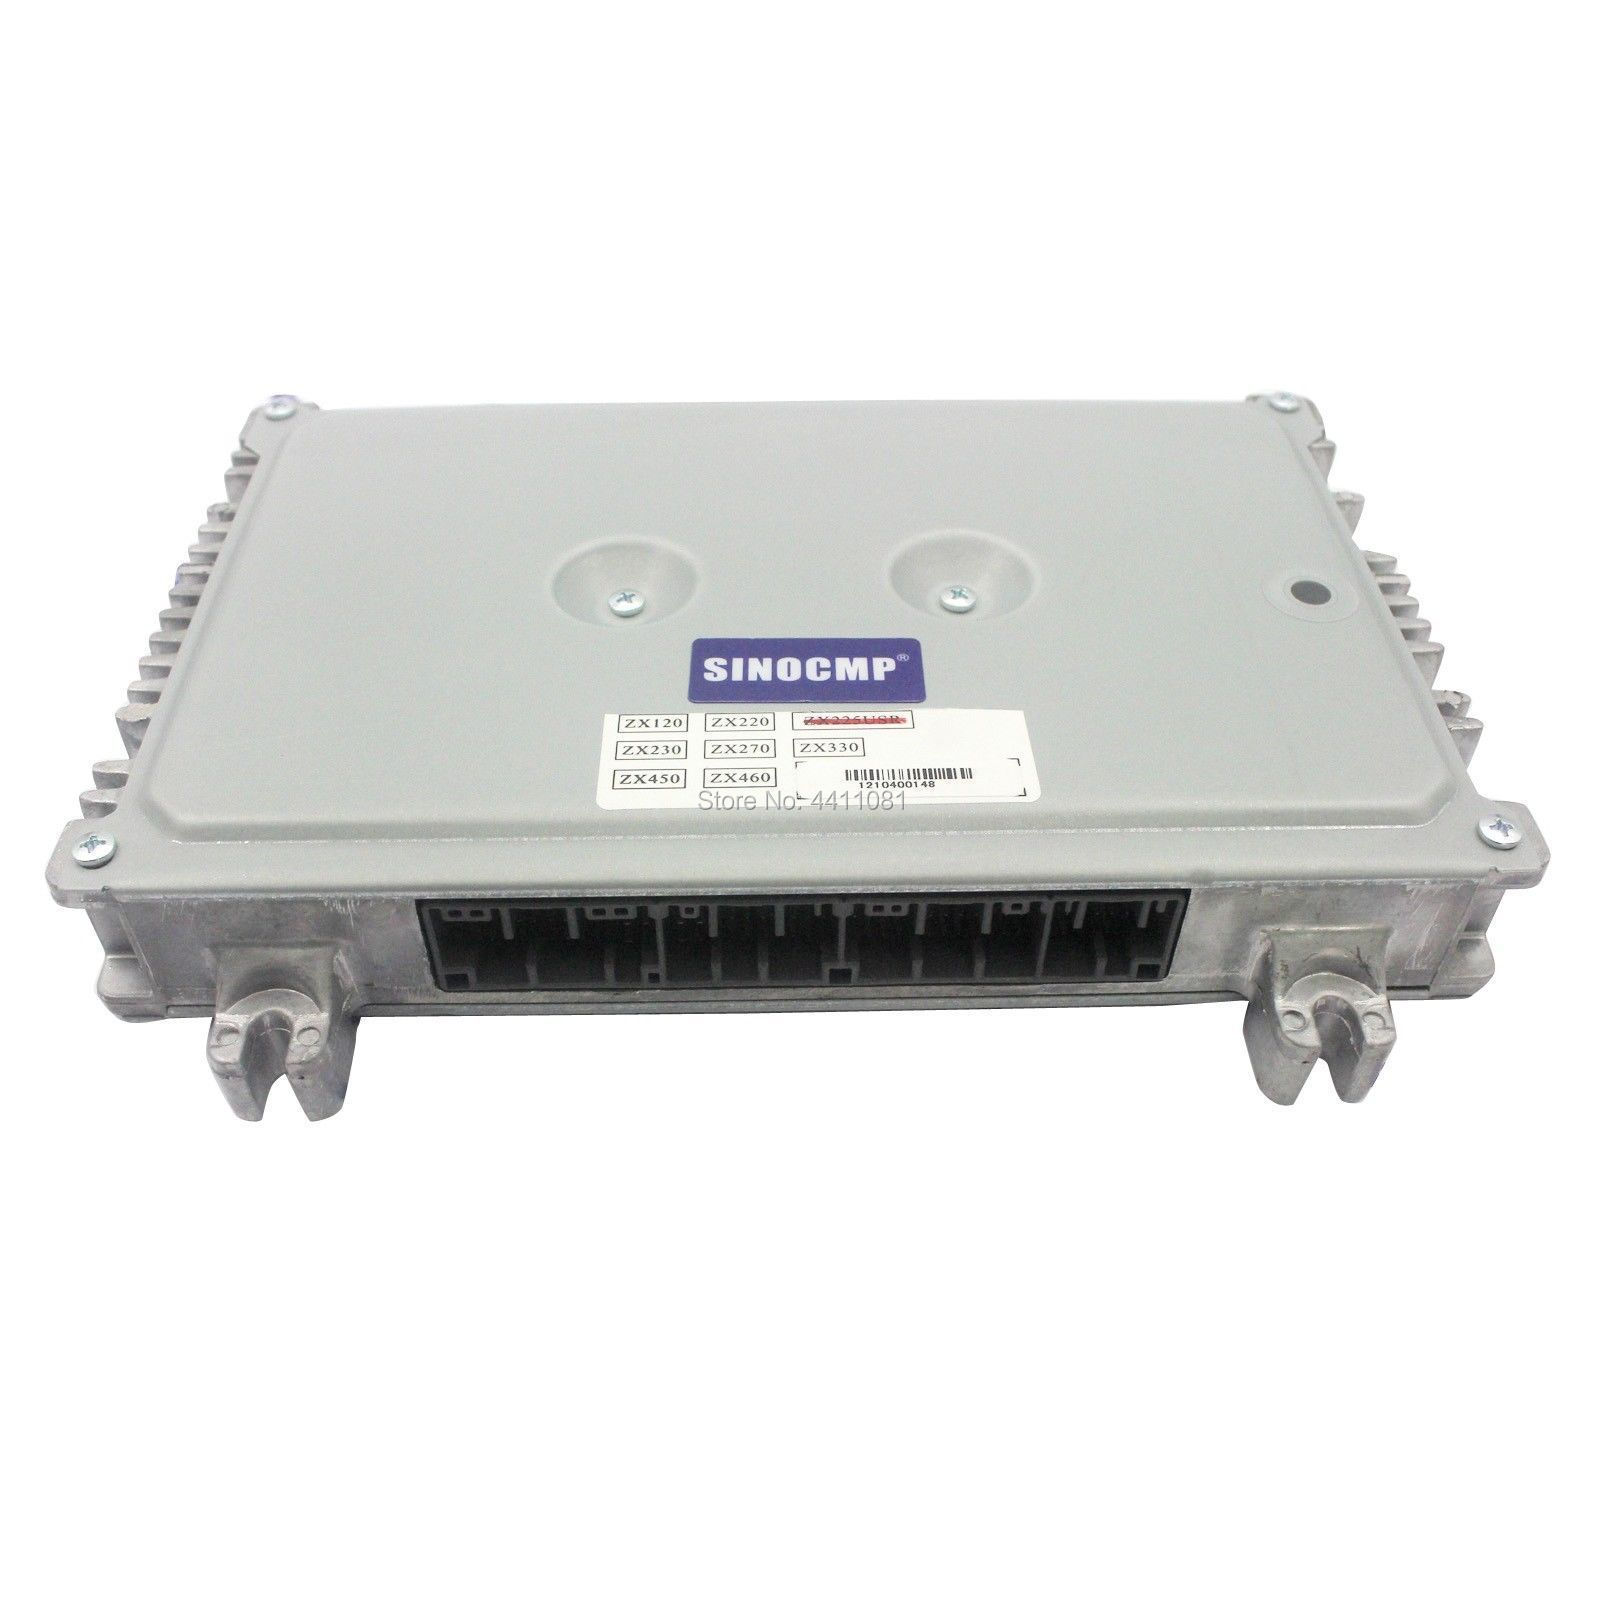 ZX450-1 Controller 4448779 9227386 for Hitachi Excavator CPU BOX, 1 year warrantyZX450-1 Controller 4448779 9227386 for Hitachi Excavator CPU BOX, 1 year warranty